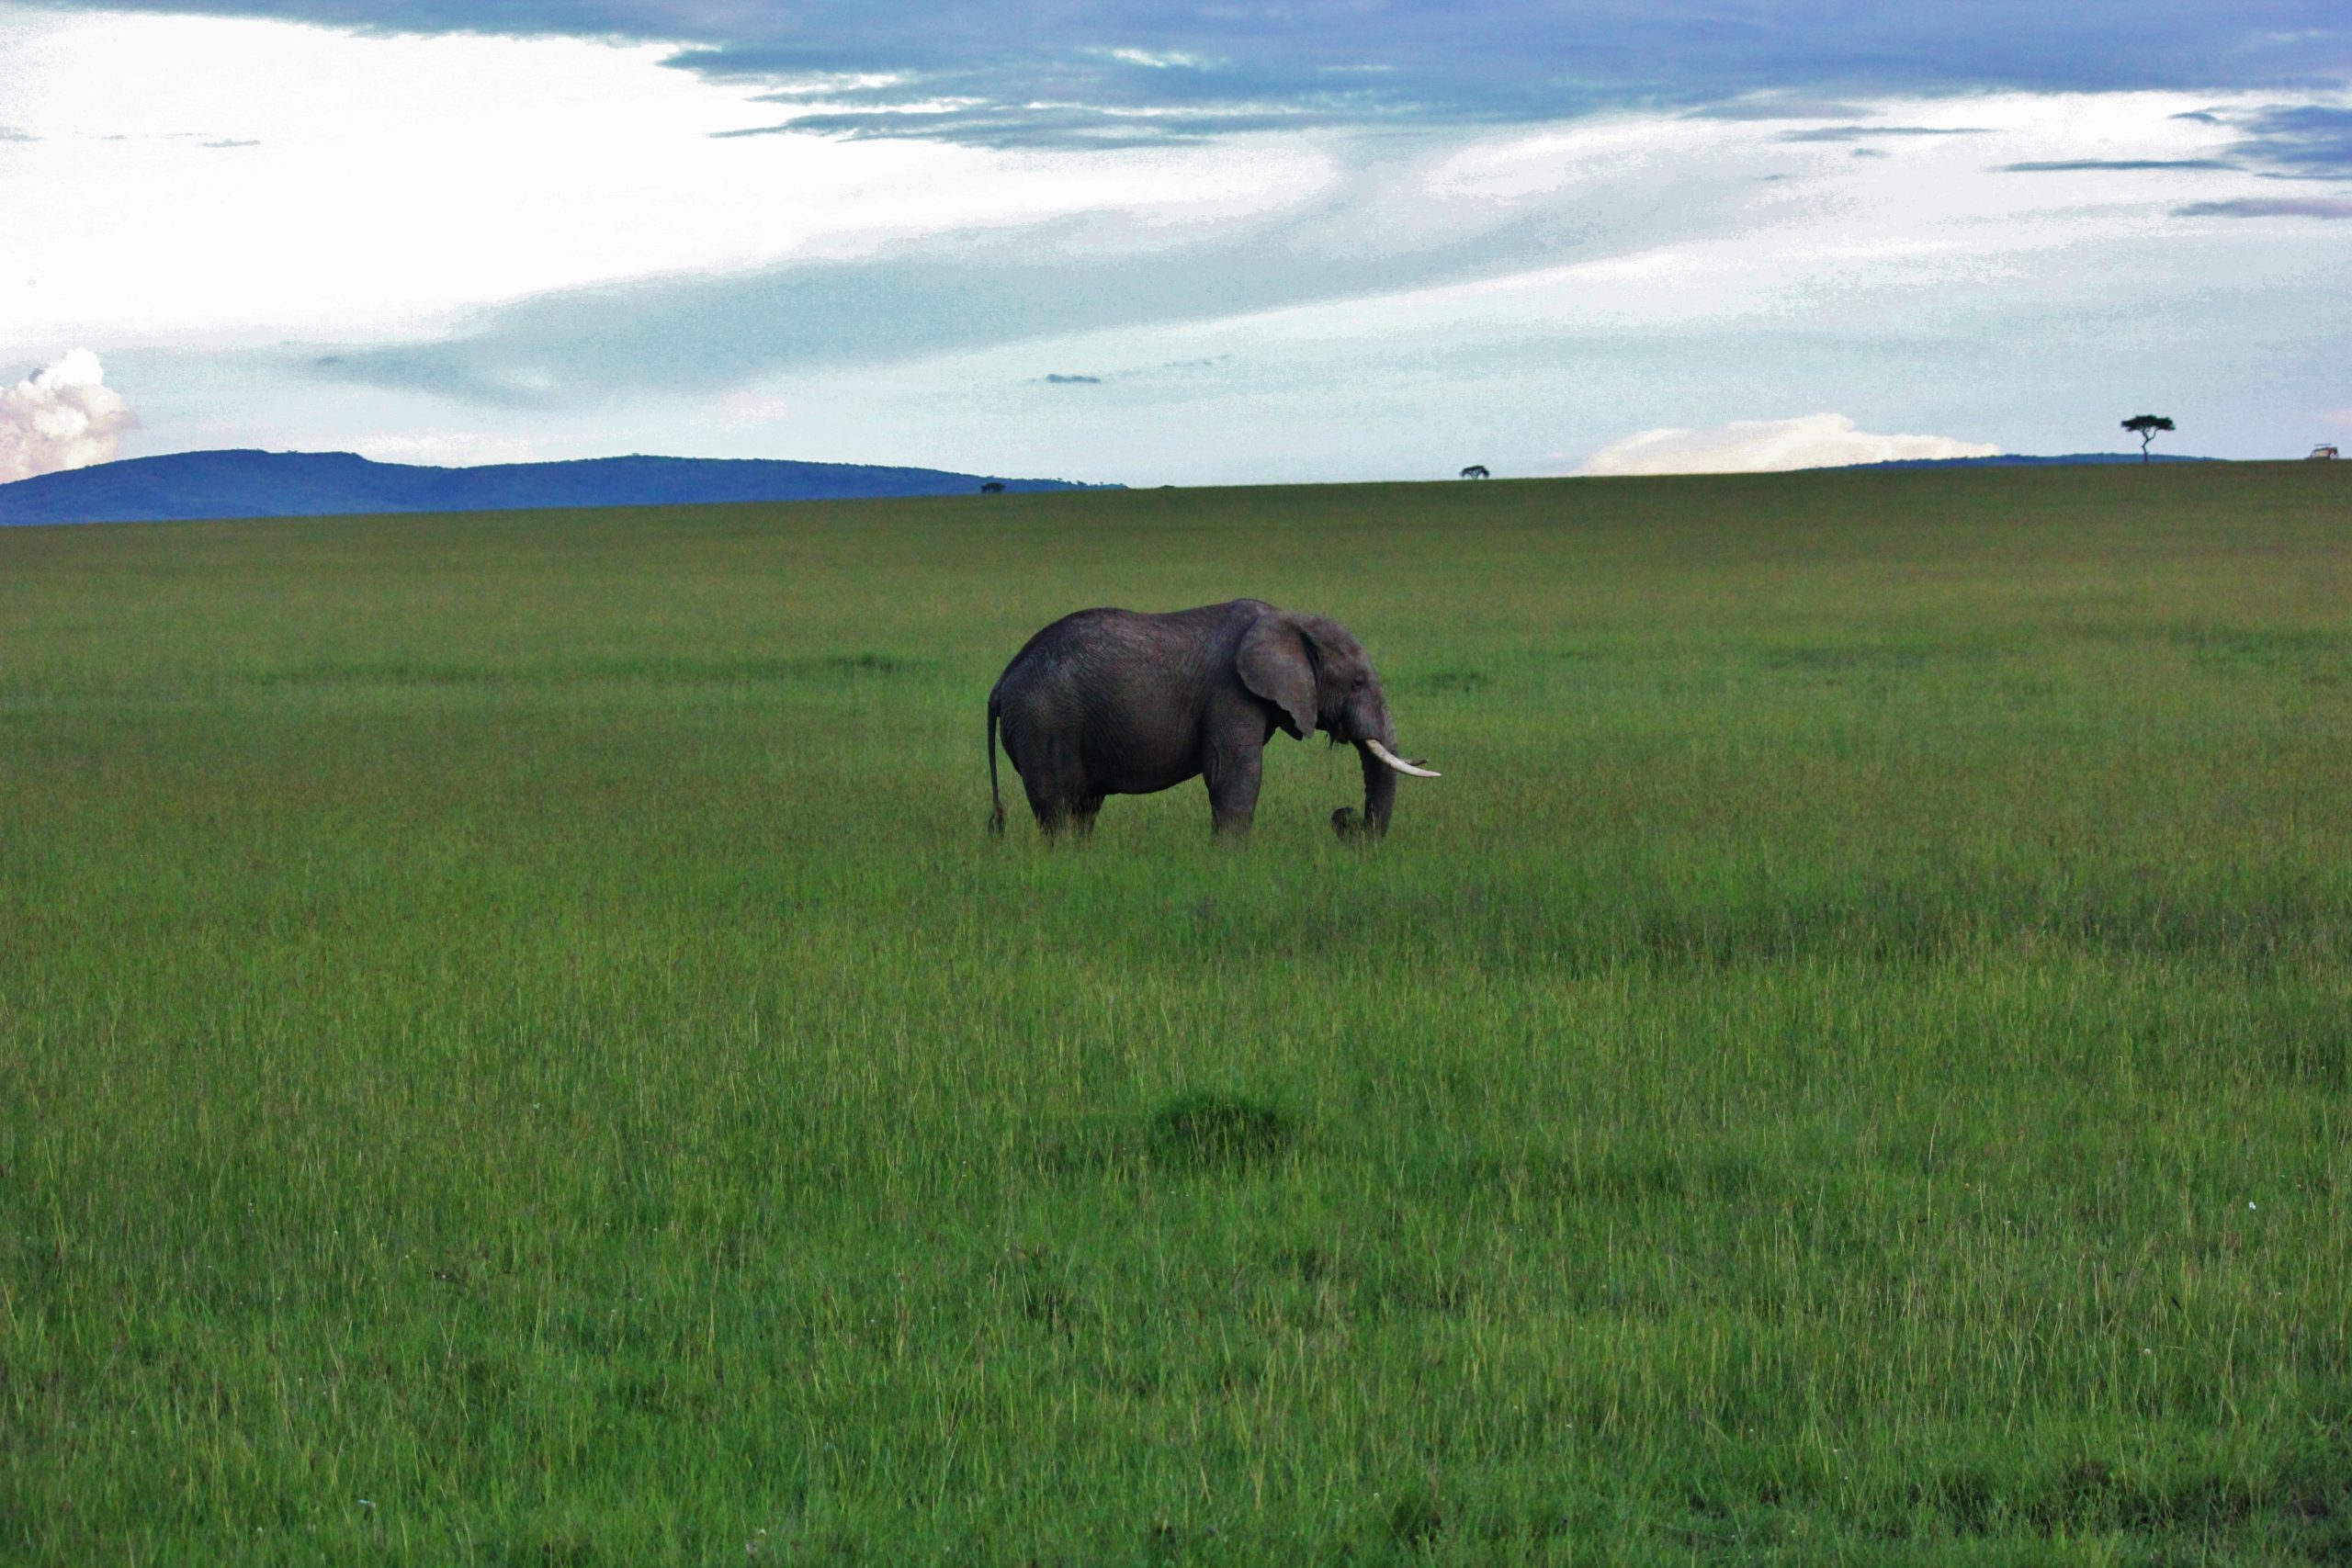 An elephant in pasture in Masai Mara